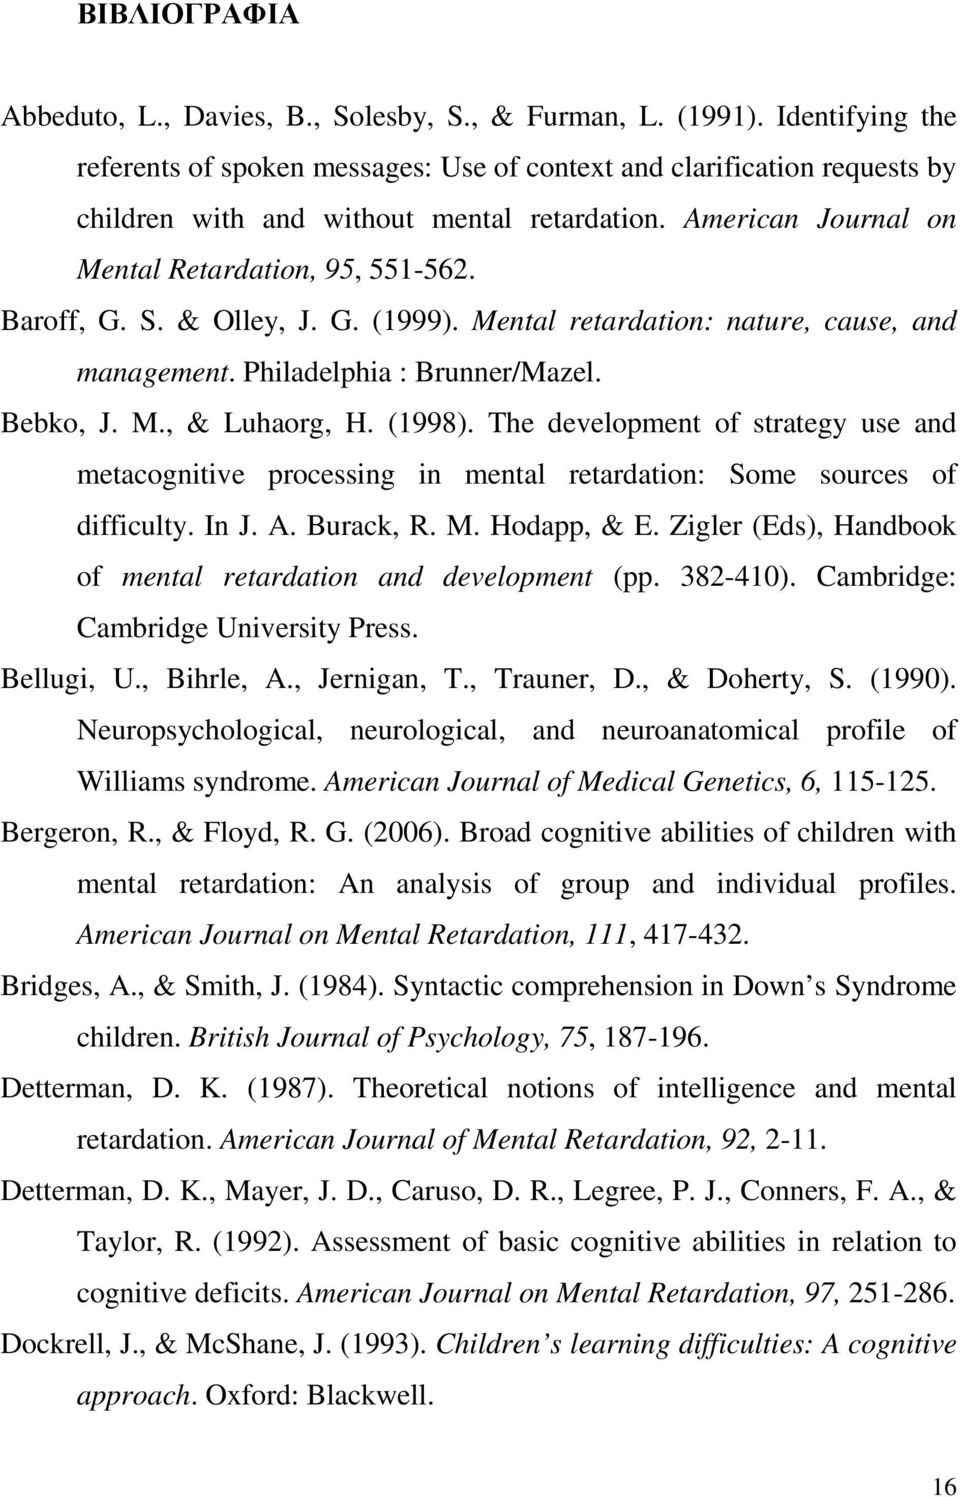 development of strategy use and metacognitive processing in mental retardation: Some sources of difficulty In J A Burack, R M Hodapp, & E Zigler (Eds), Handbook of mental retardation and development